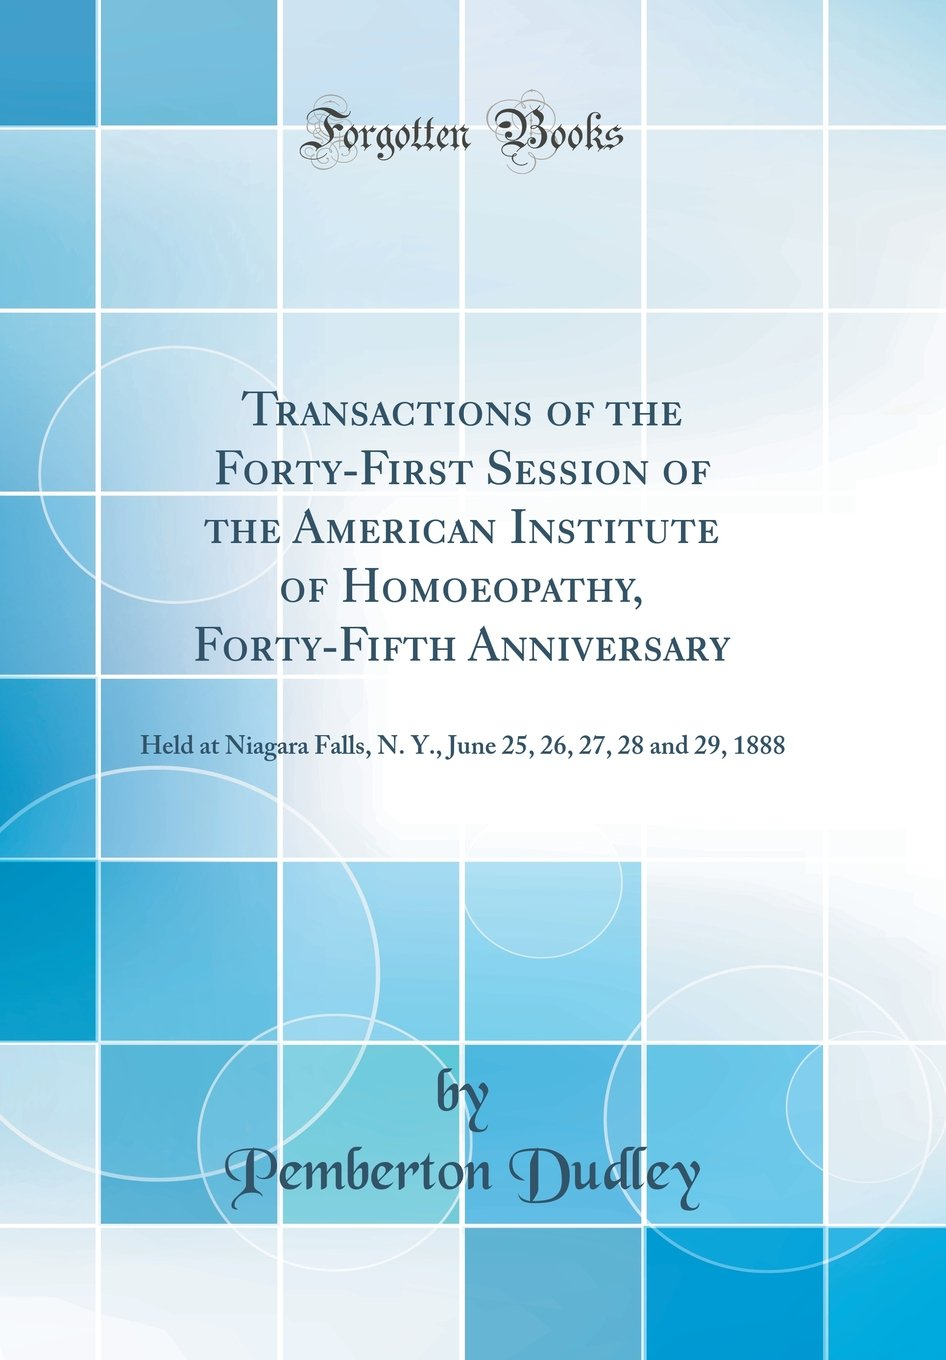 Download Transactions of the Forty-First Session of the American Institute of Homoeopathy, Forty-Fifth Anniversary: Held at Niagara Falls, N. Y., June 25, 26, 27, 28 and 29, 1888 (Classic Reprint) PDF